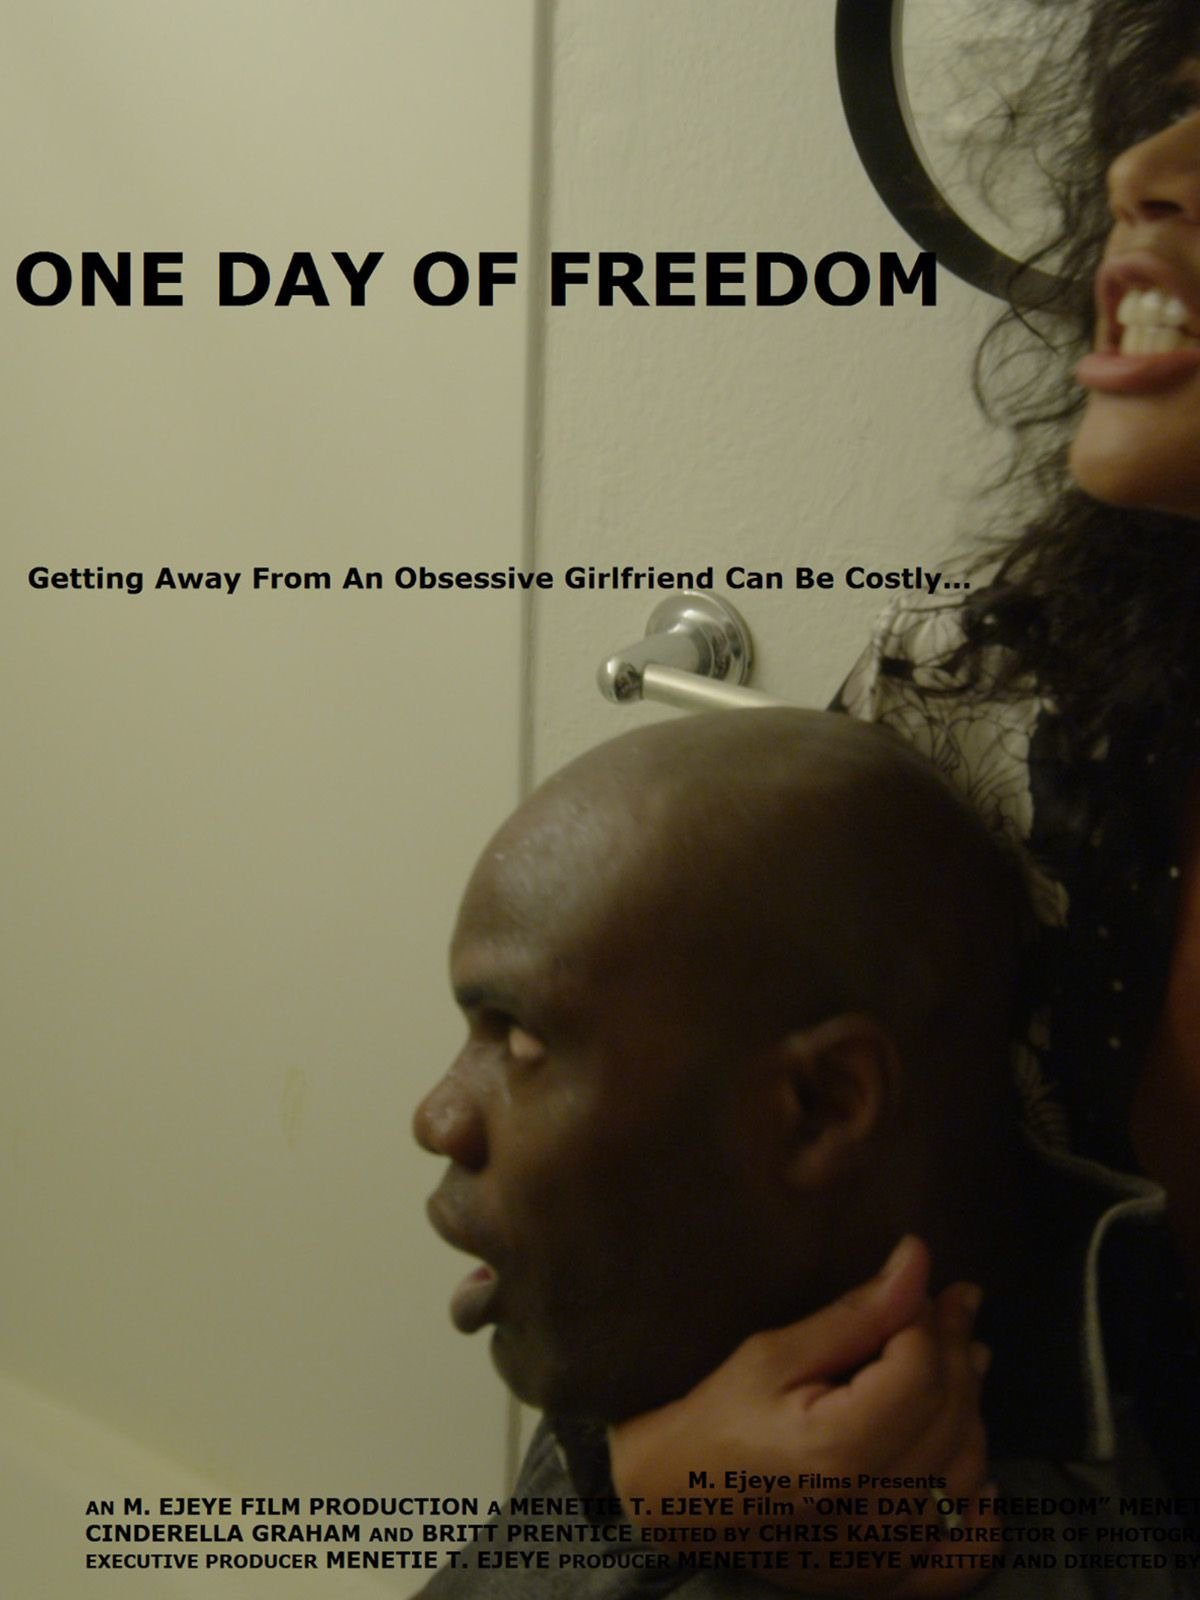 One Day of Freedom